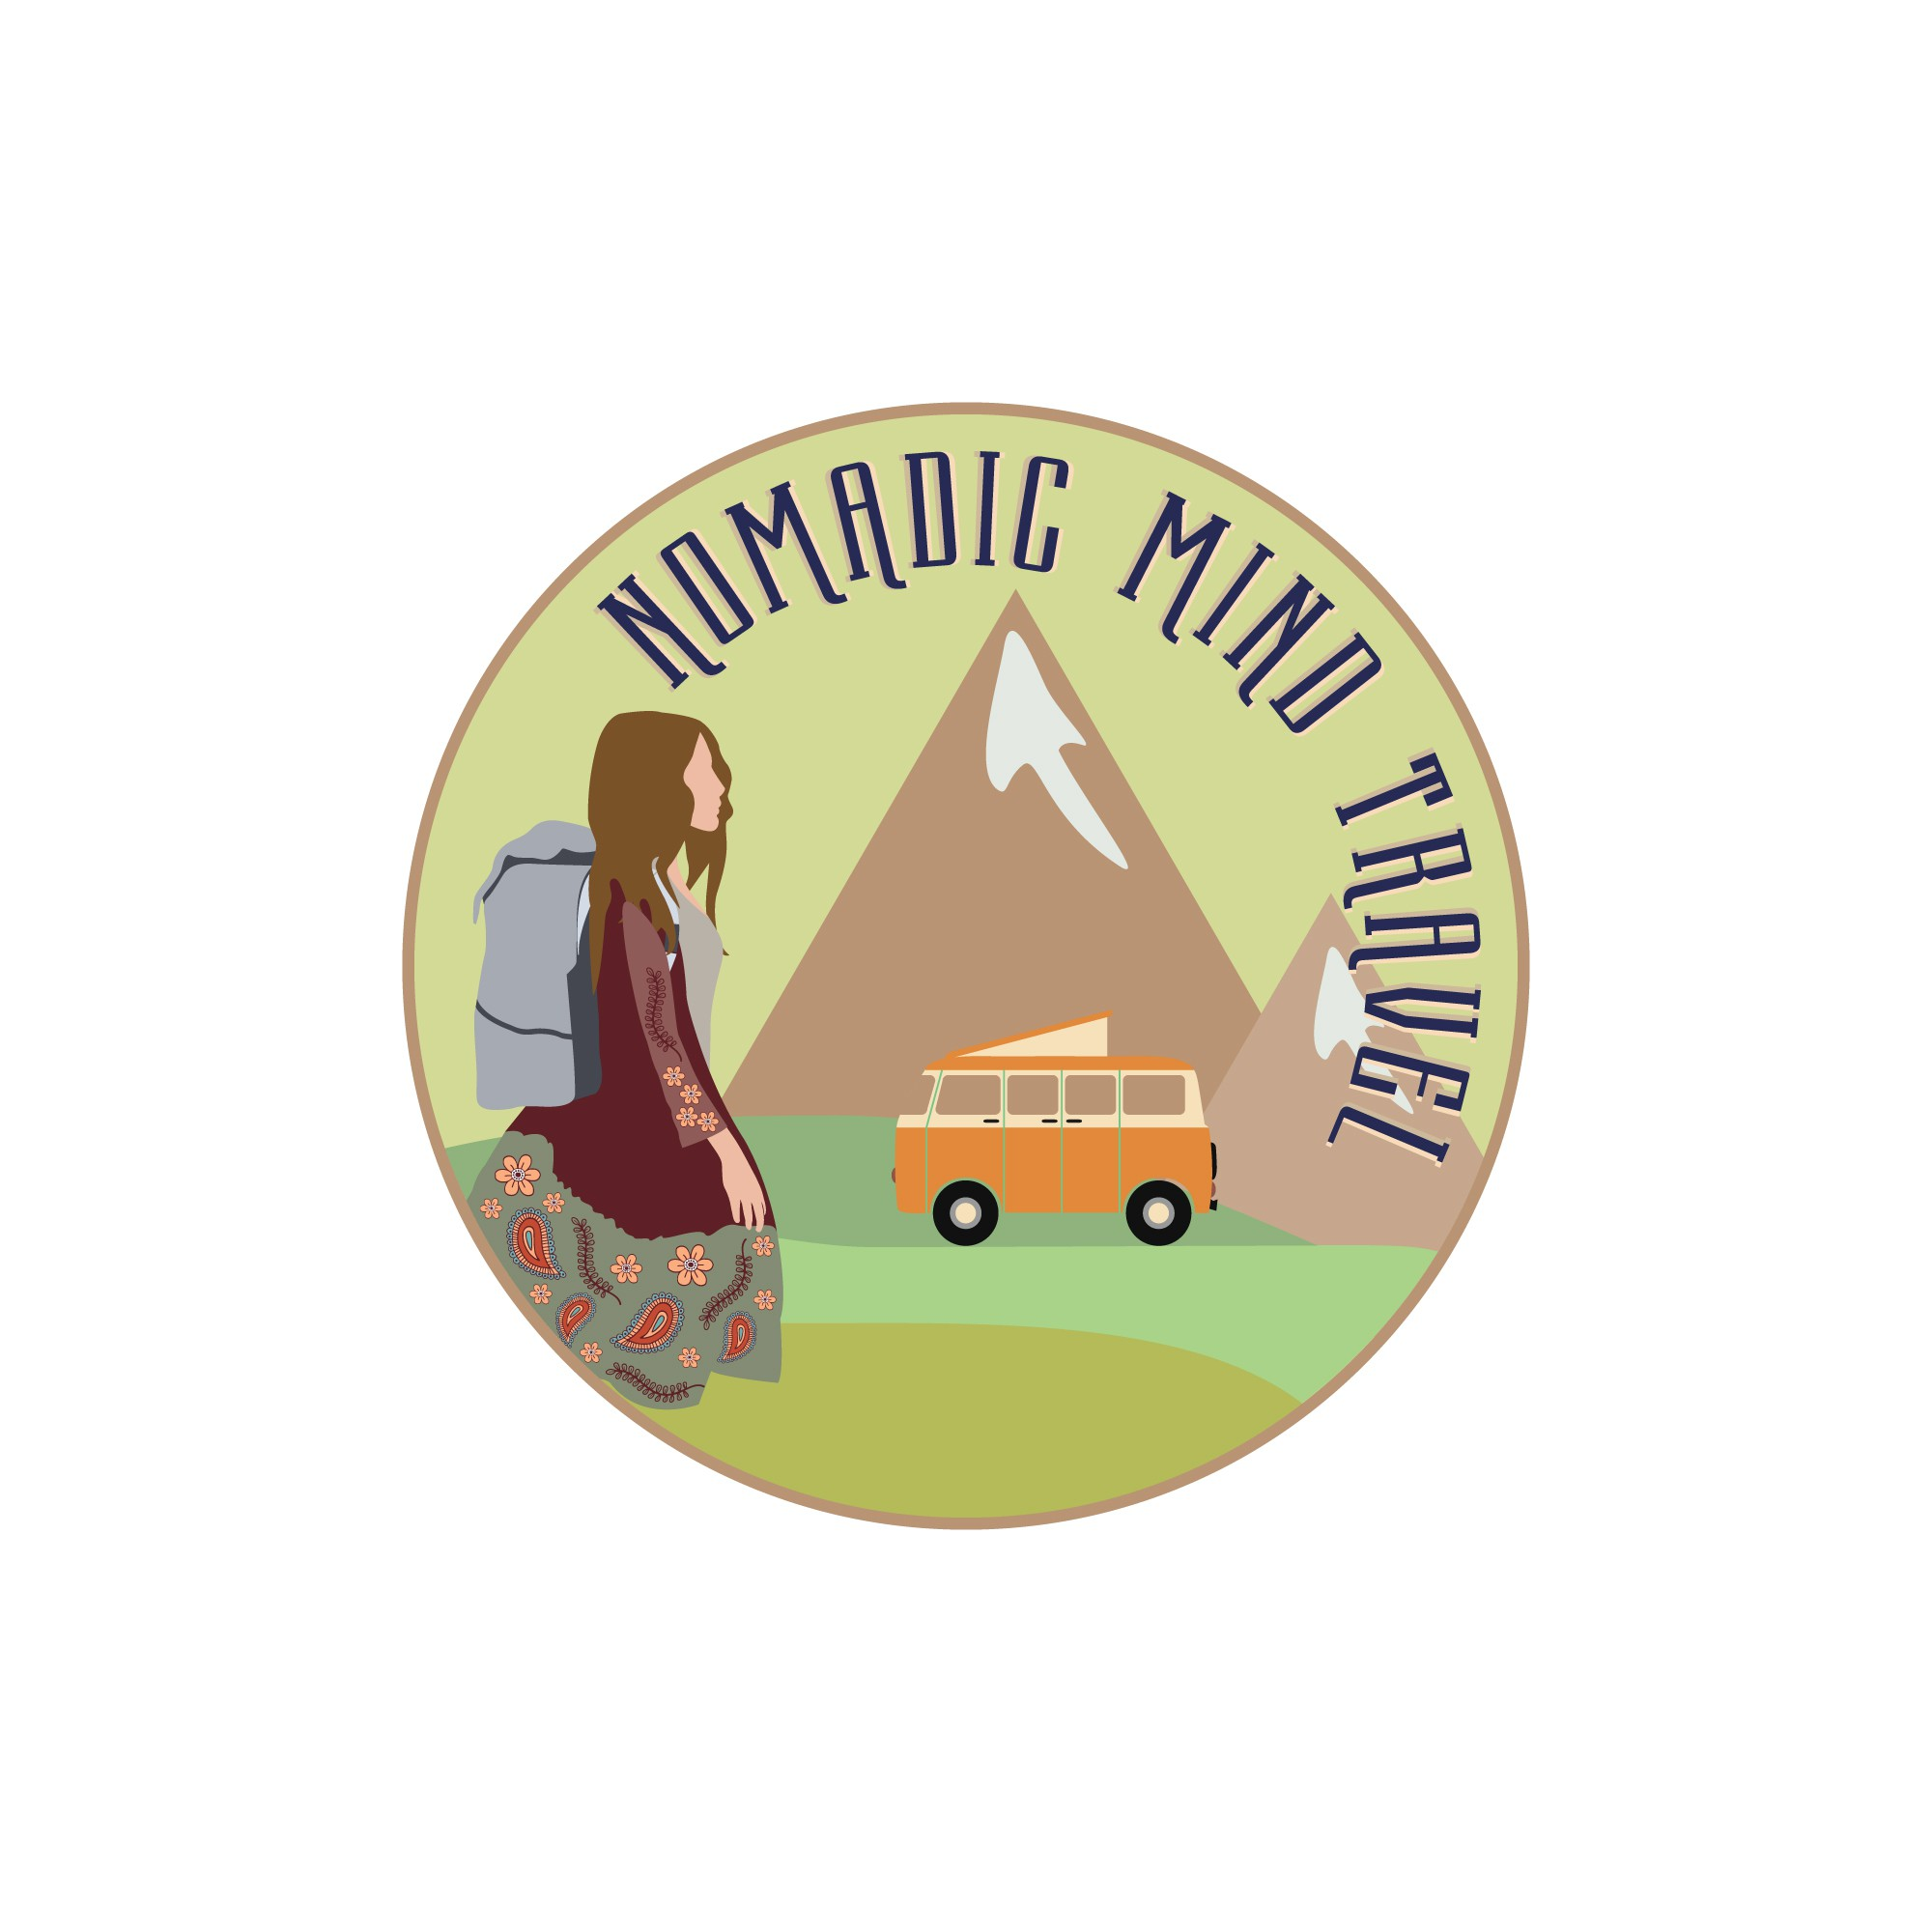 Nomadic Mind Travel. Travel Blog for Backpackers, specially for solo women backpackers